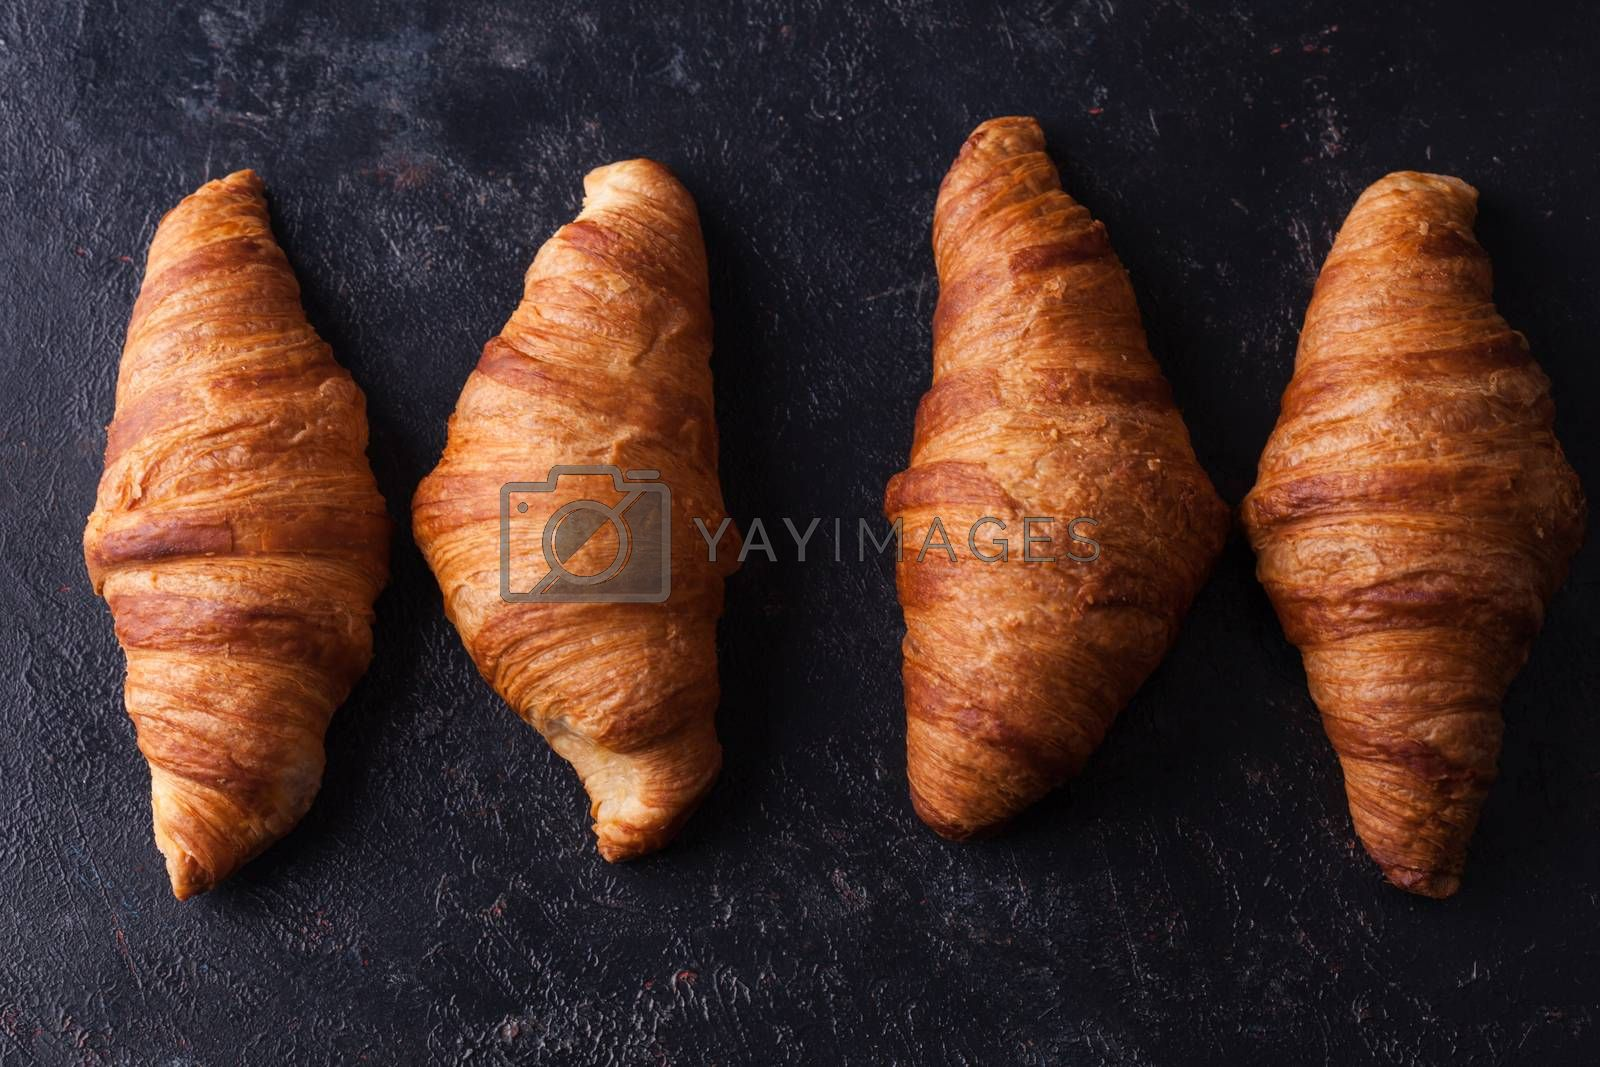 Fresh baked traditional croissants on dark wooden table by DCStudio